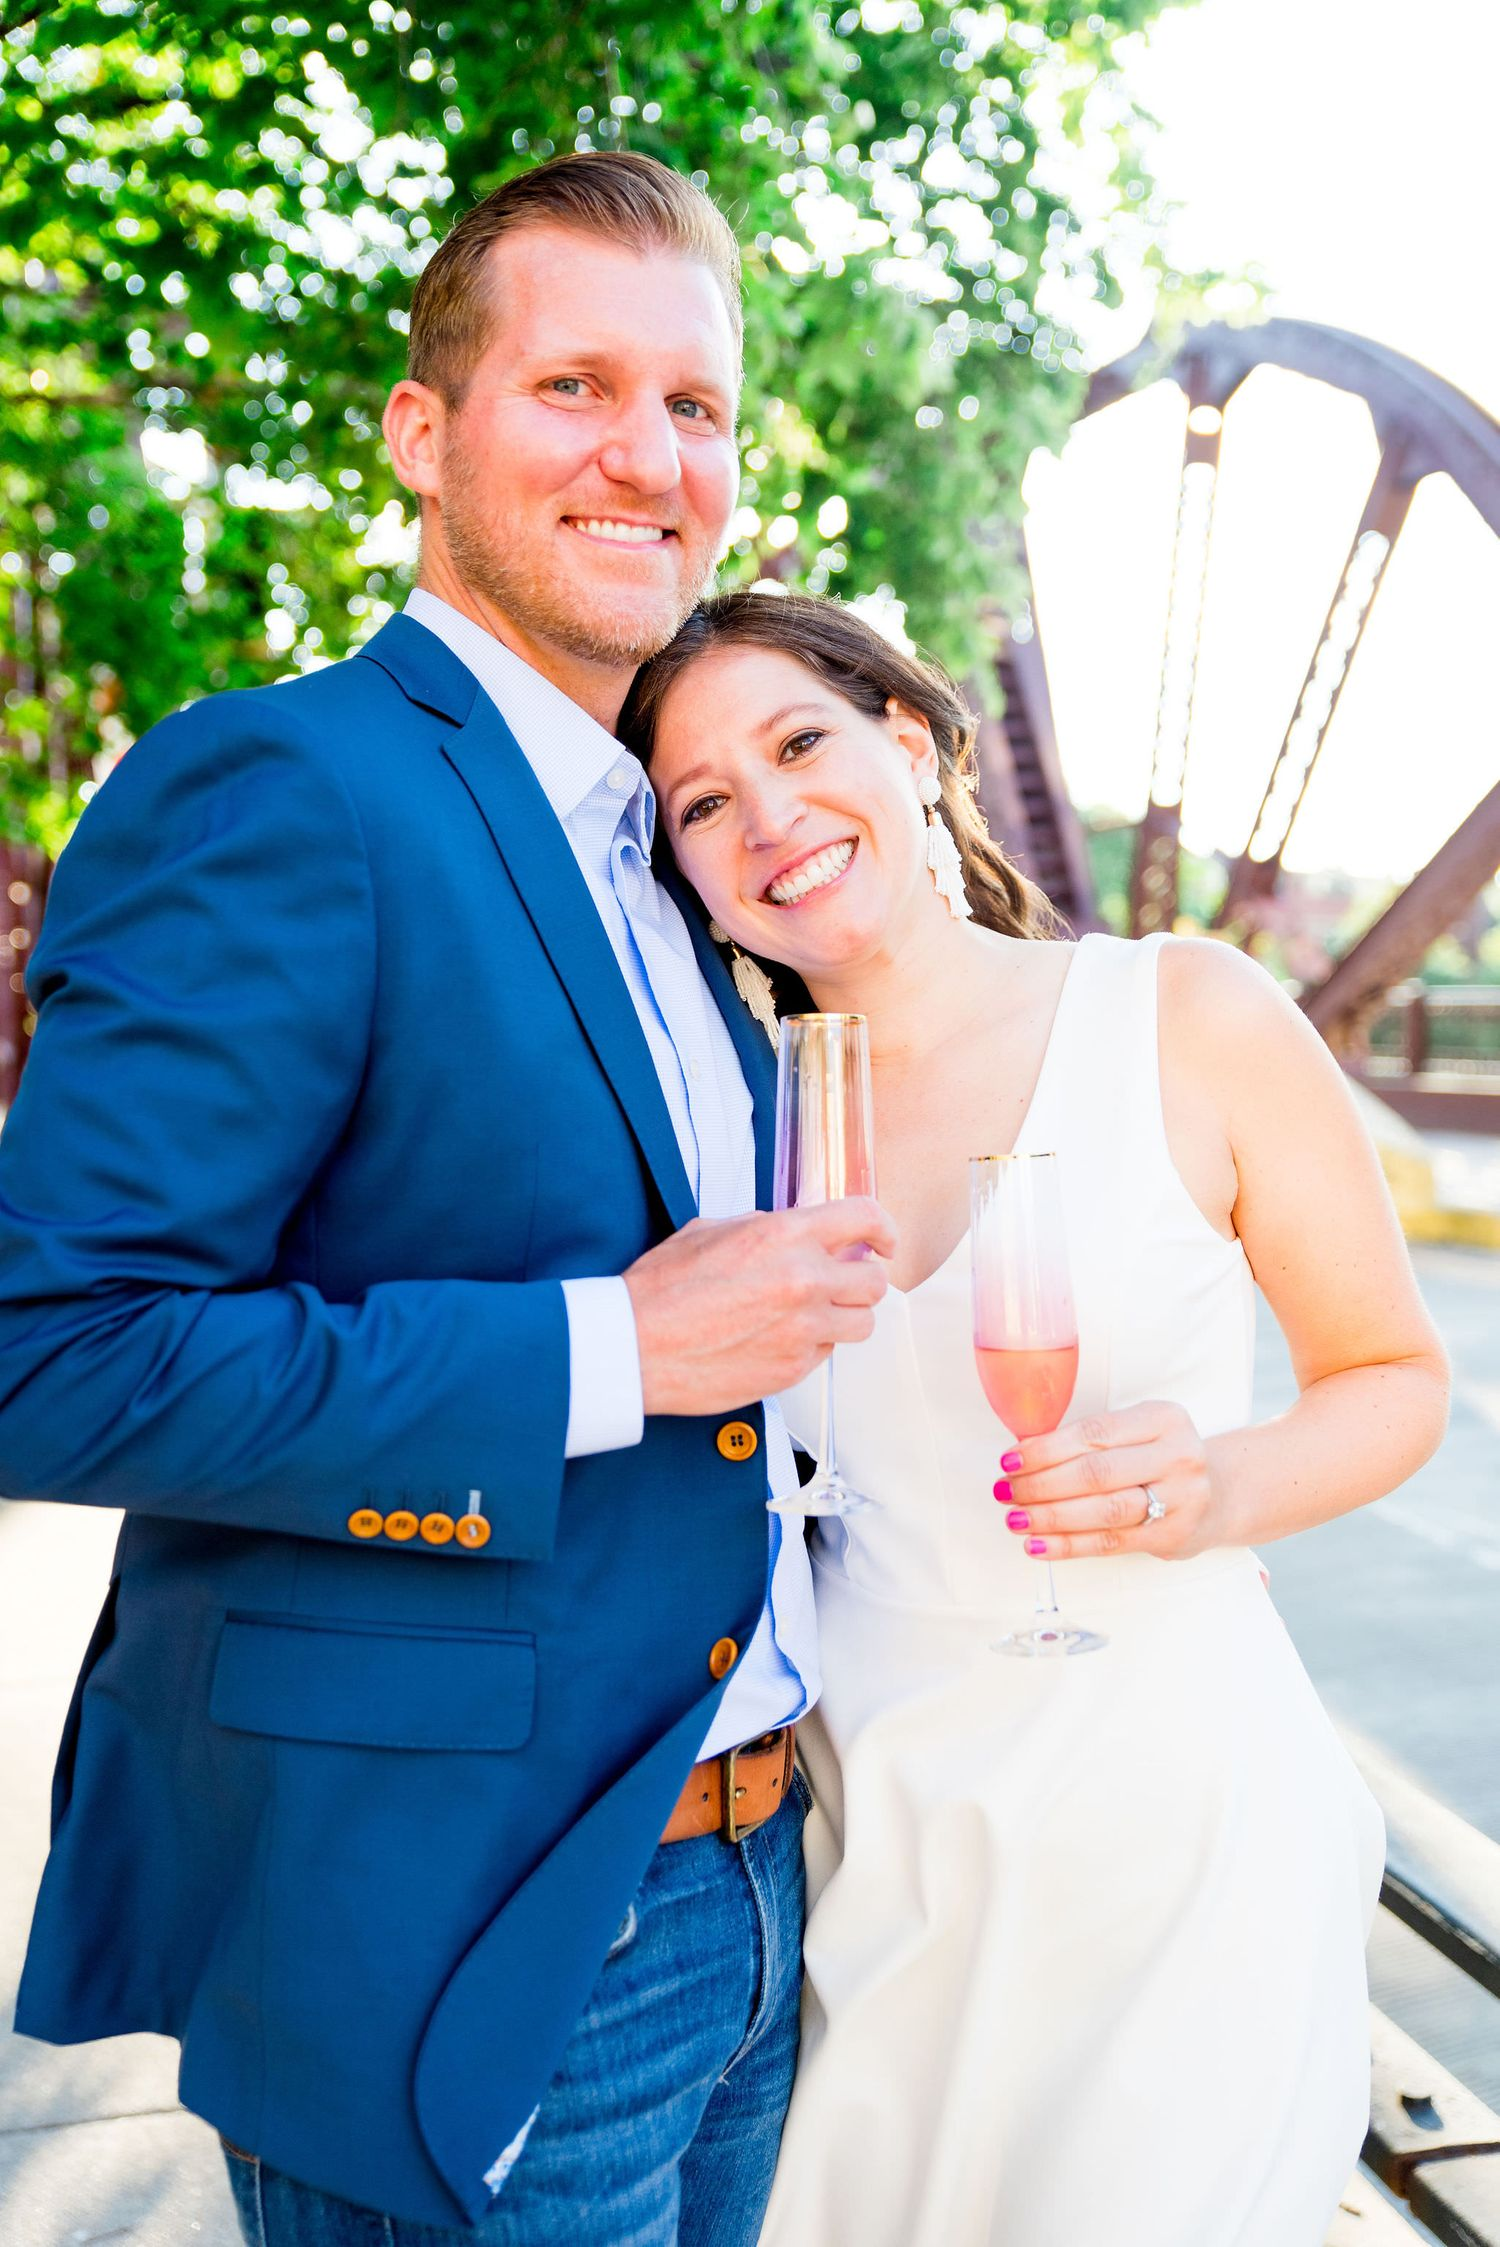 engaged man and woman holding champagne glasses and smiling at sunset at Kinzie St Bridge in River North, Chicago